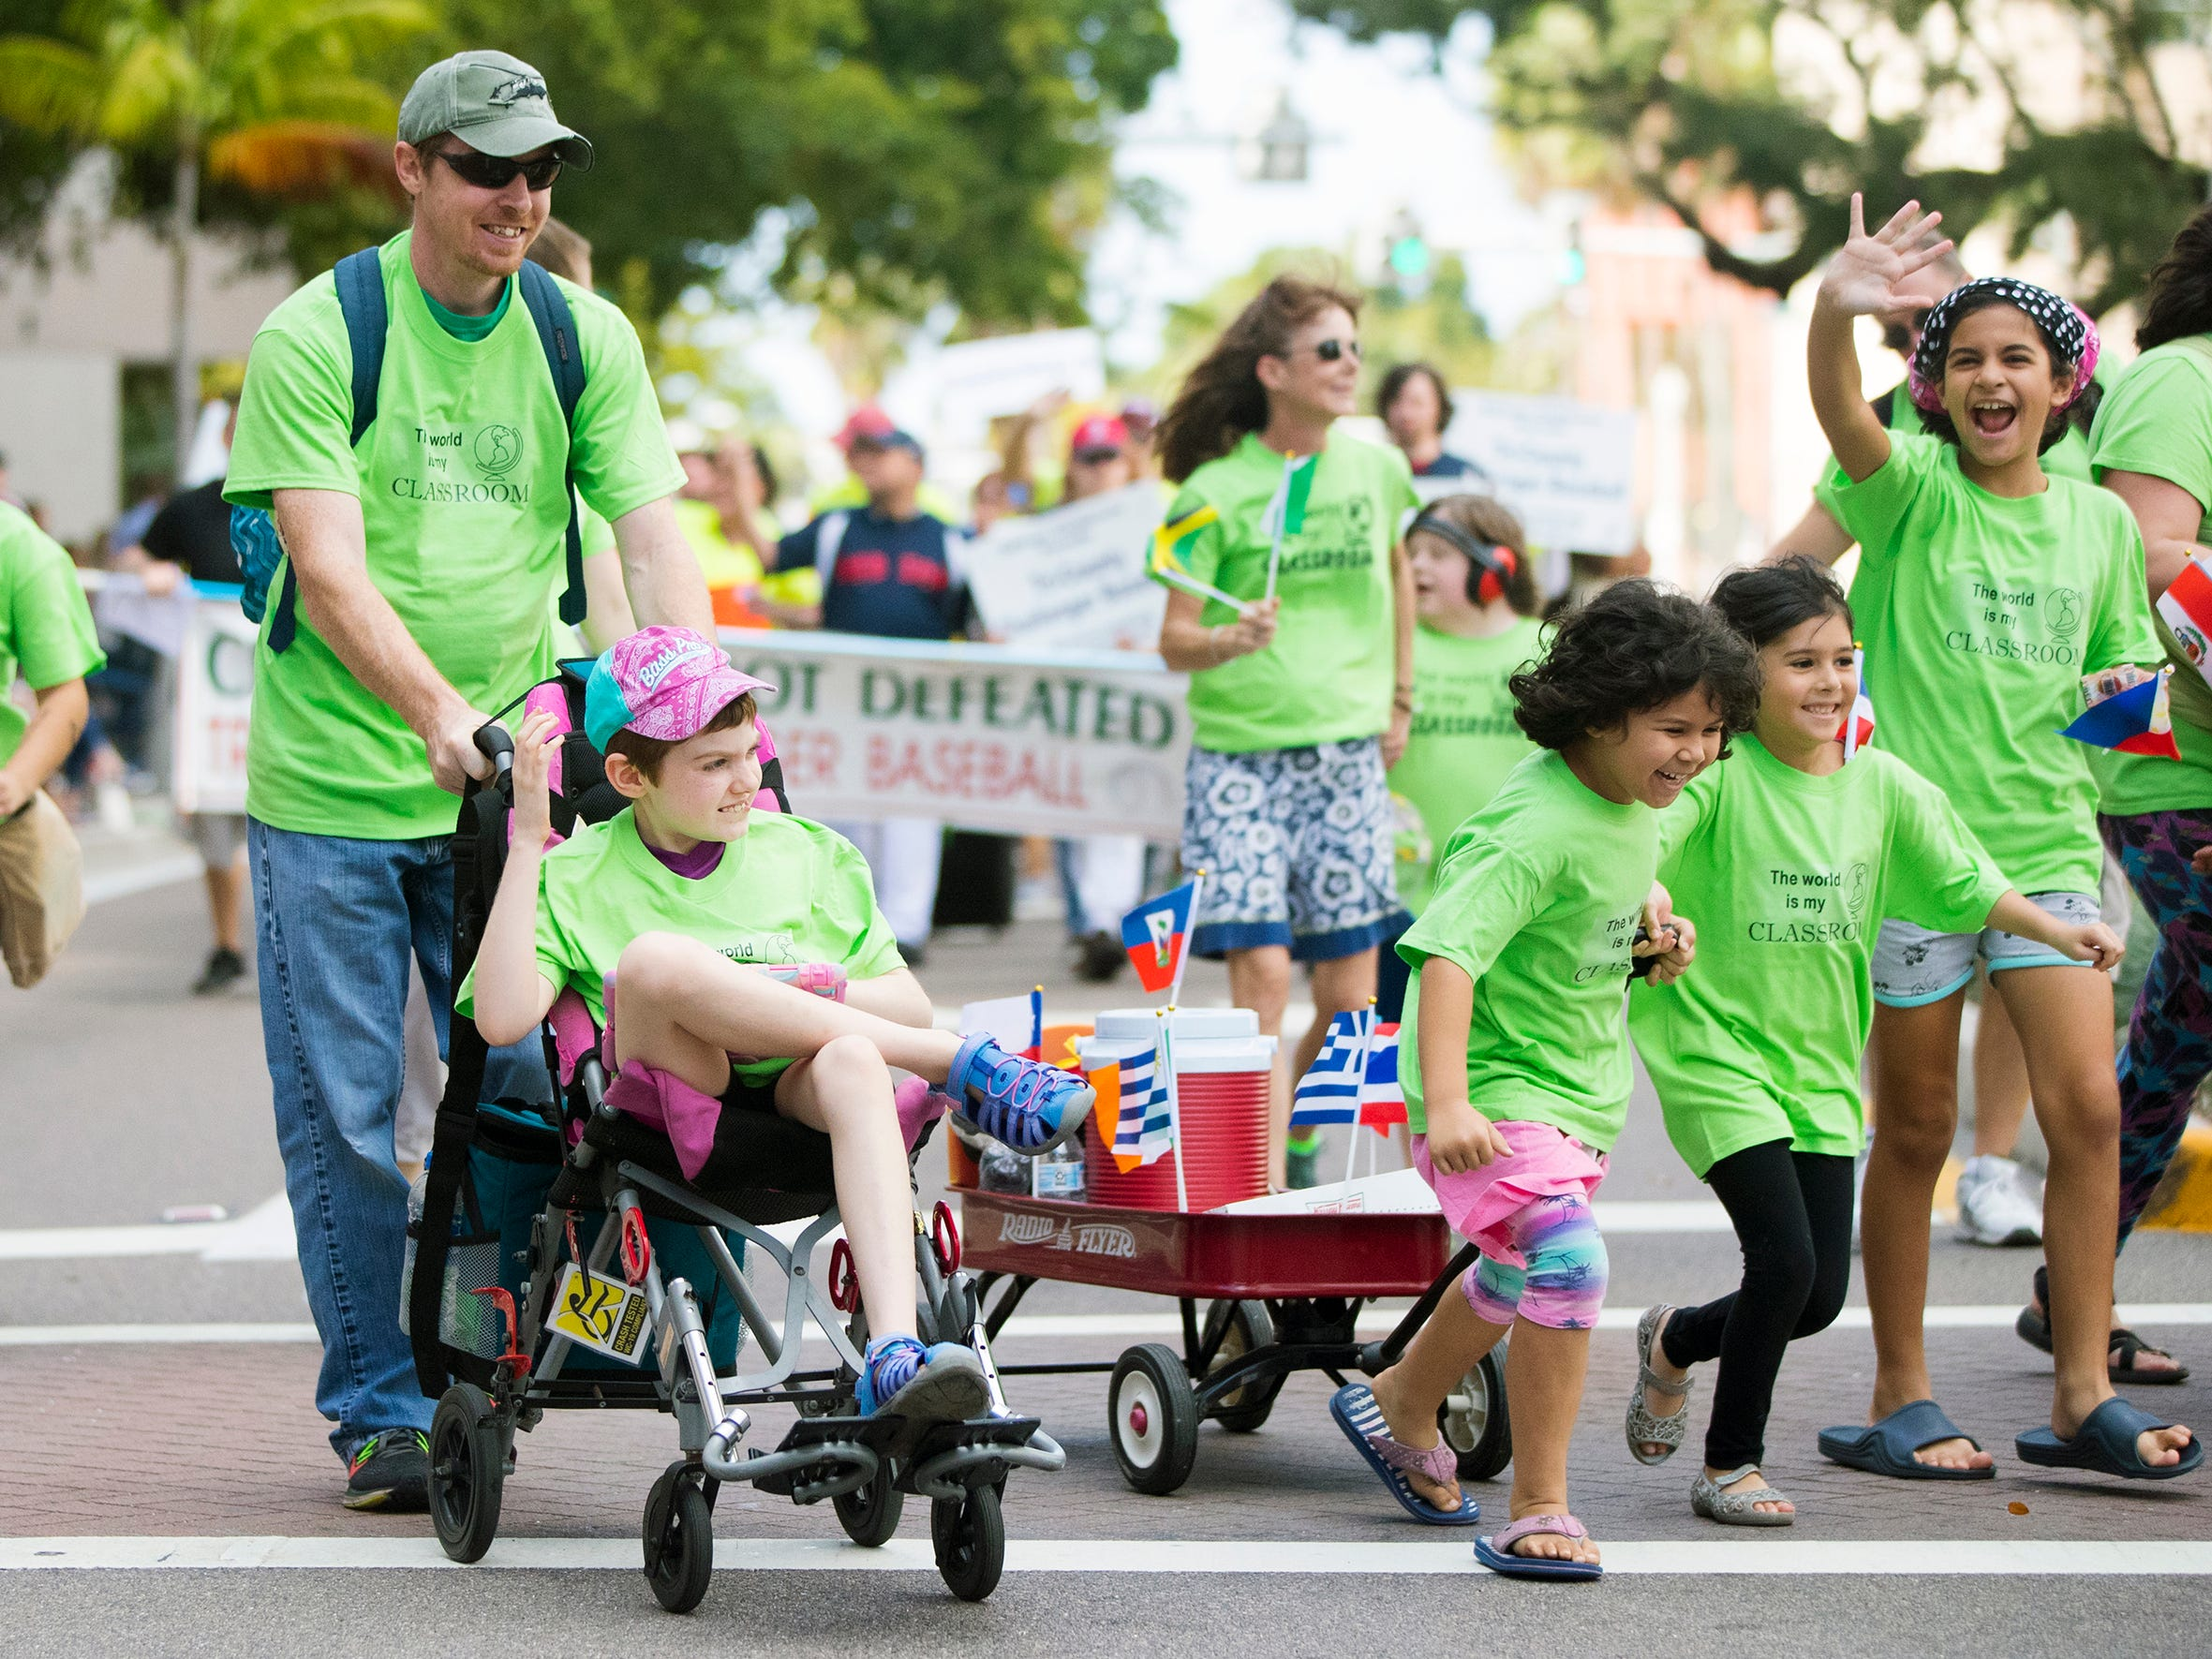 The Holistic Homeschoolers of SWFL march in the Edison Festival of Light Junior Parade on Sunday in downtown Fort Myers. More than 70 groups participated in the annual event.